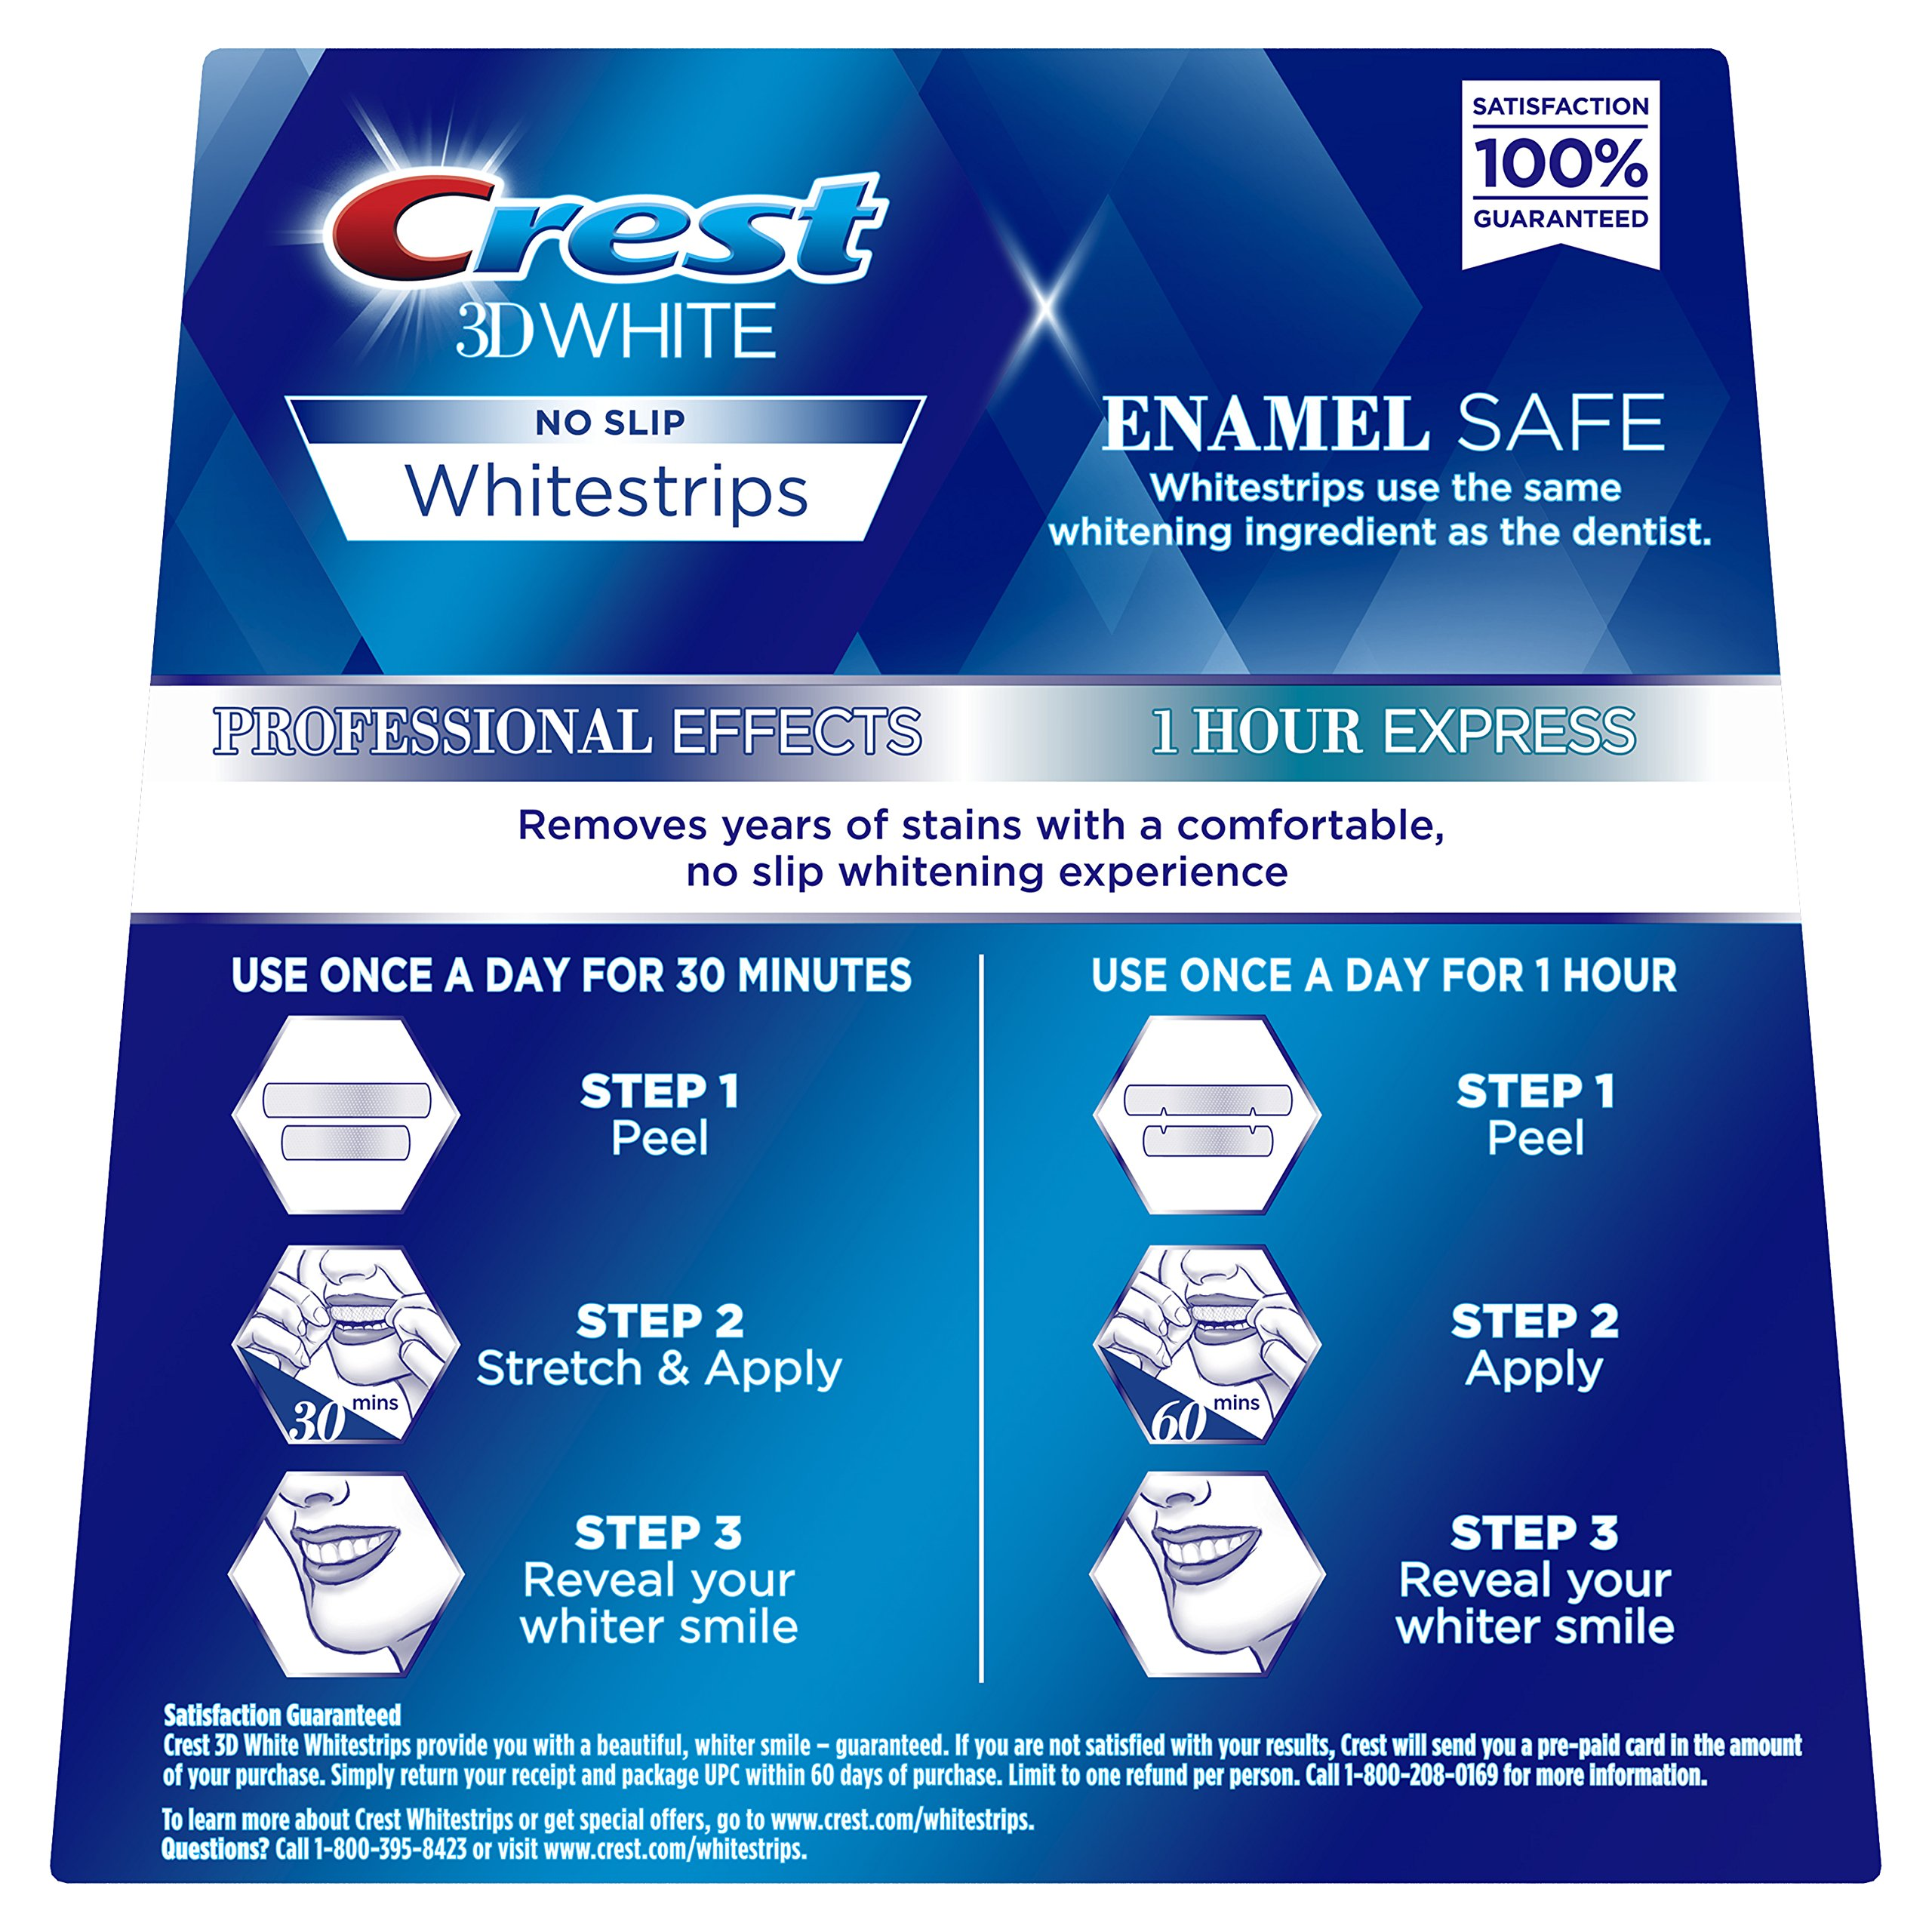 Crest 3D White Professional Effects Whitestrips Whitening Strips Kit, 22 Treatments, 20 Professional Effects + 2 1 Hour Express Whitestrips by Crest (Image #2)